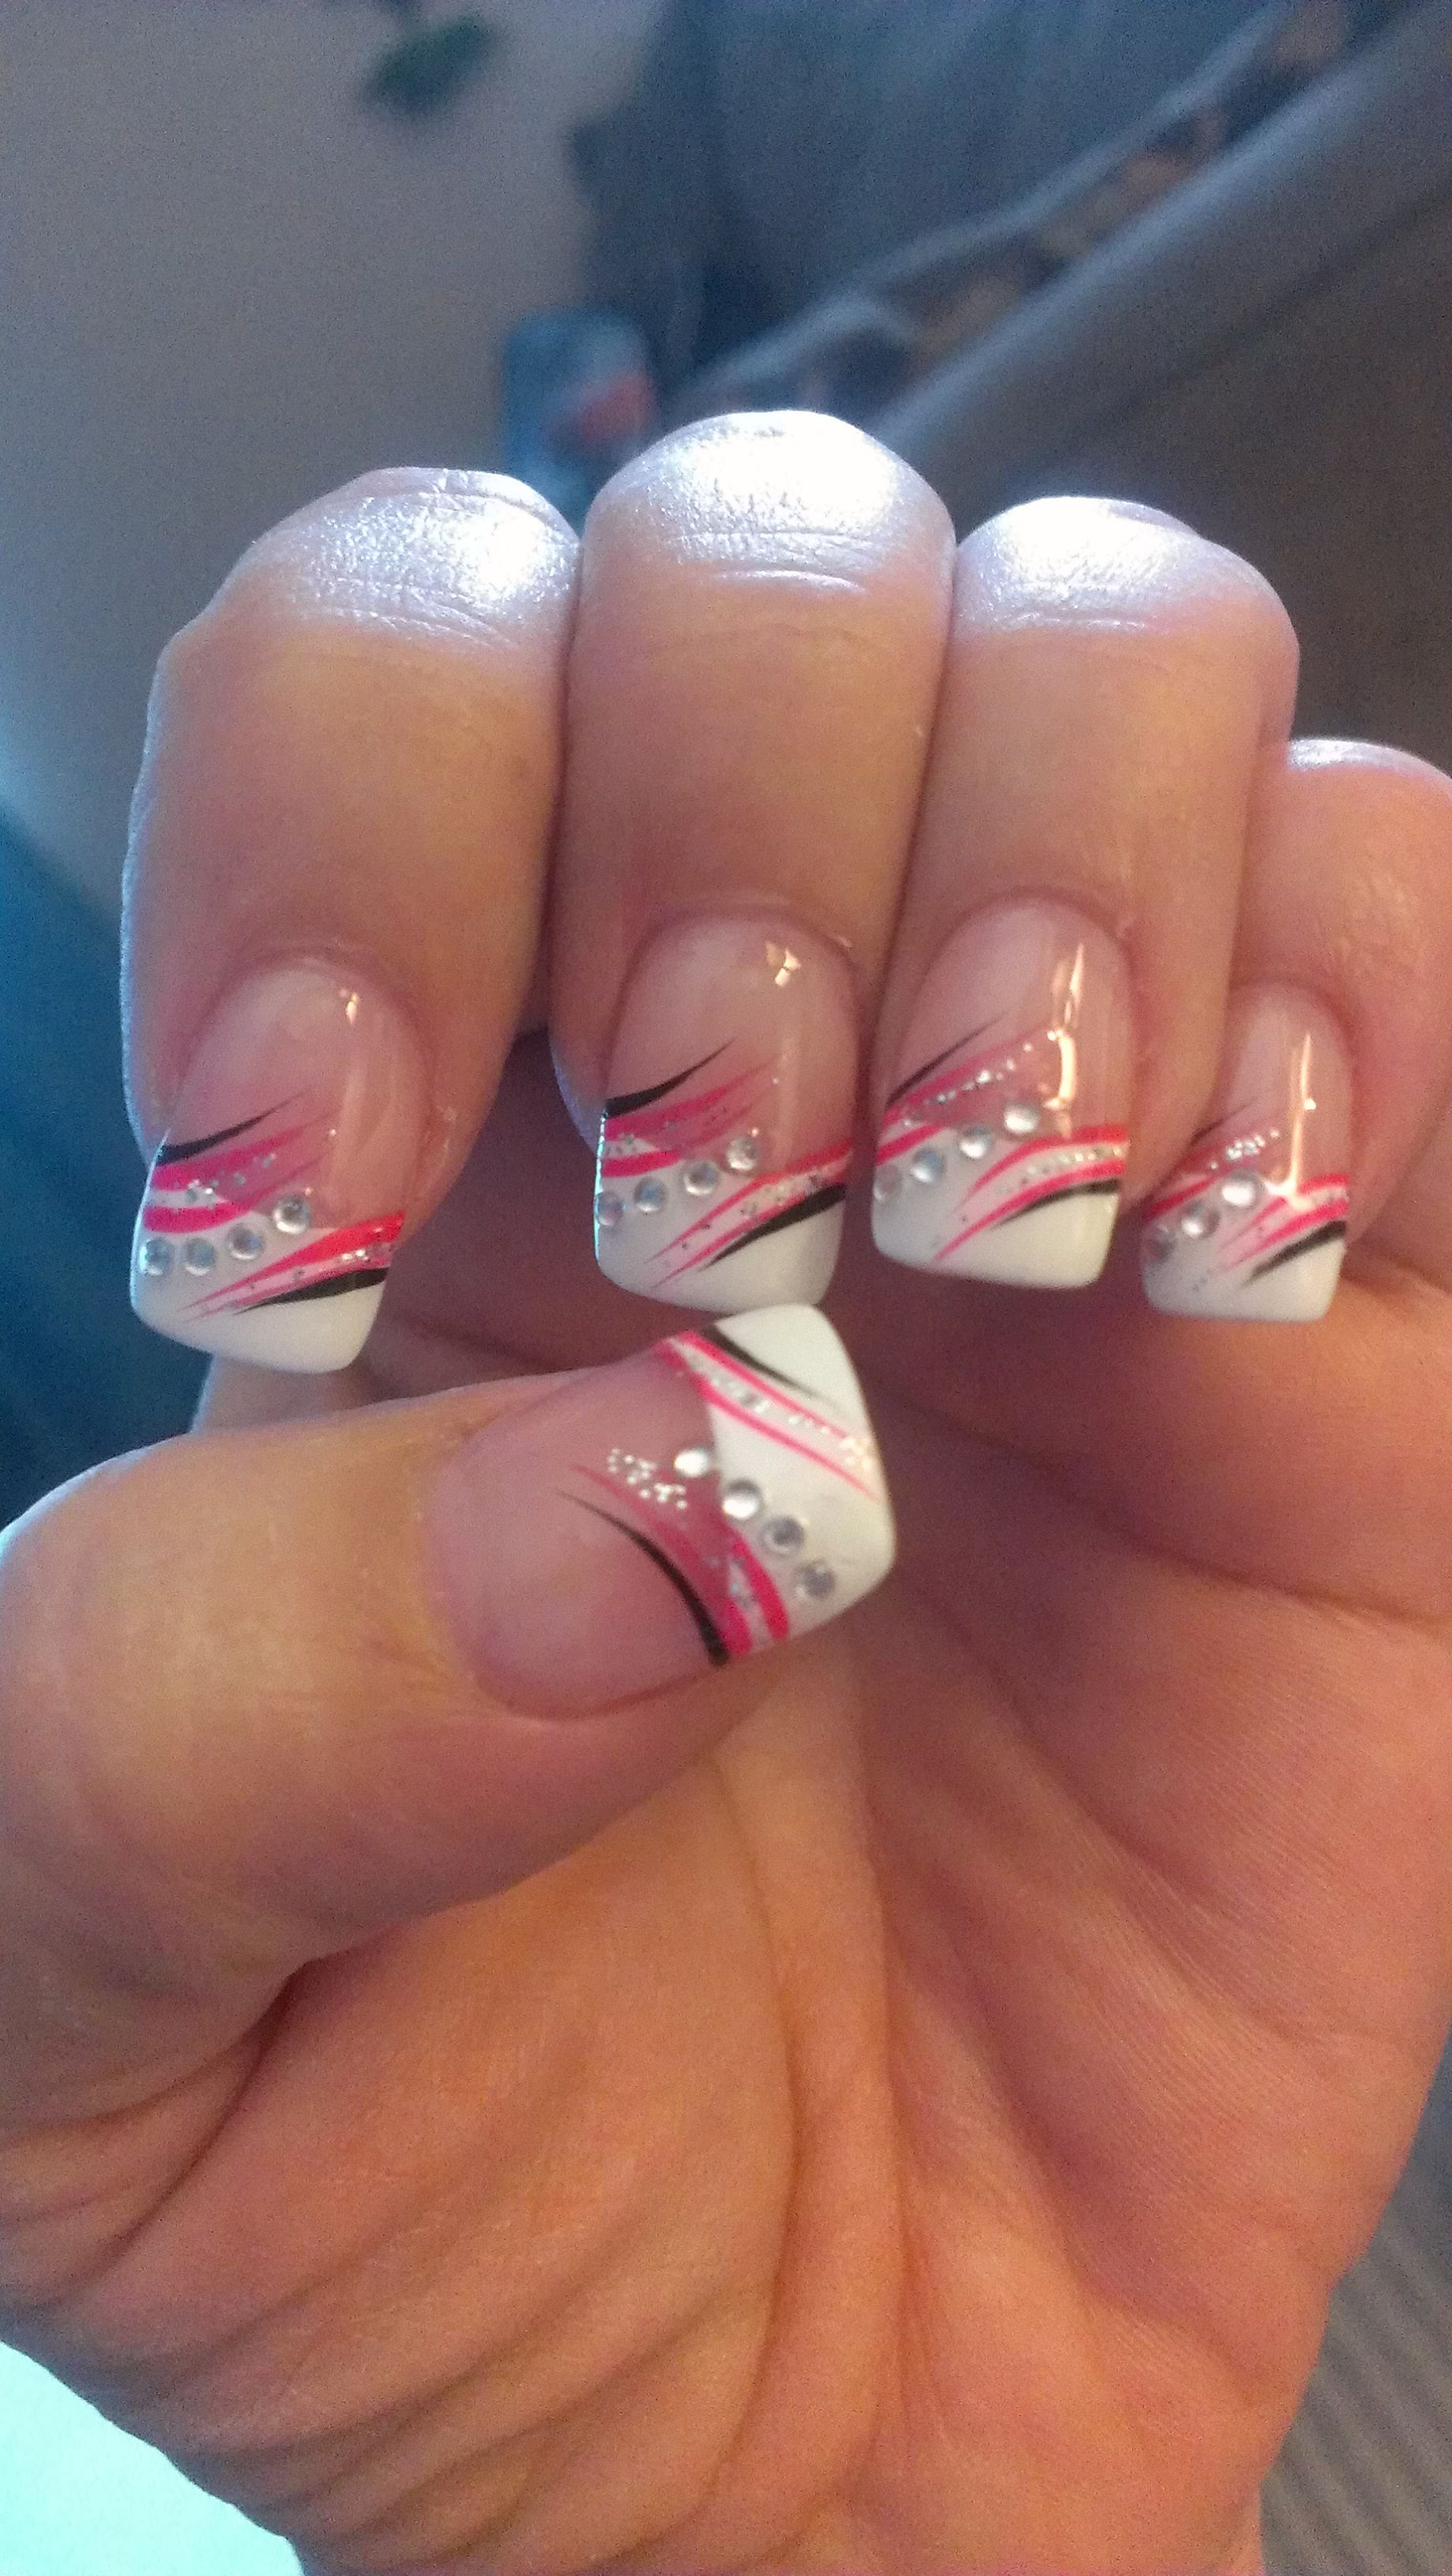 How To Make Nails Grow Faster & Stronger